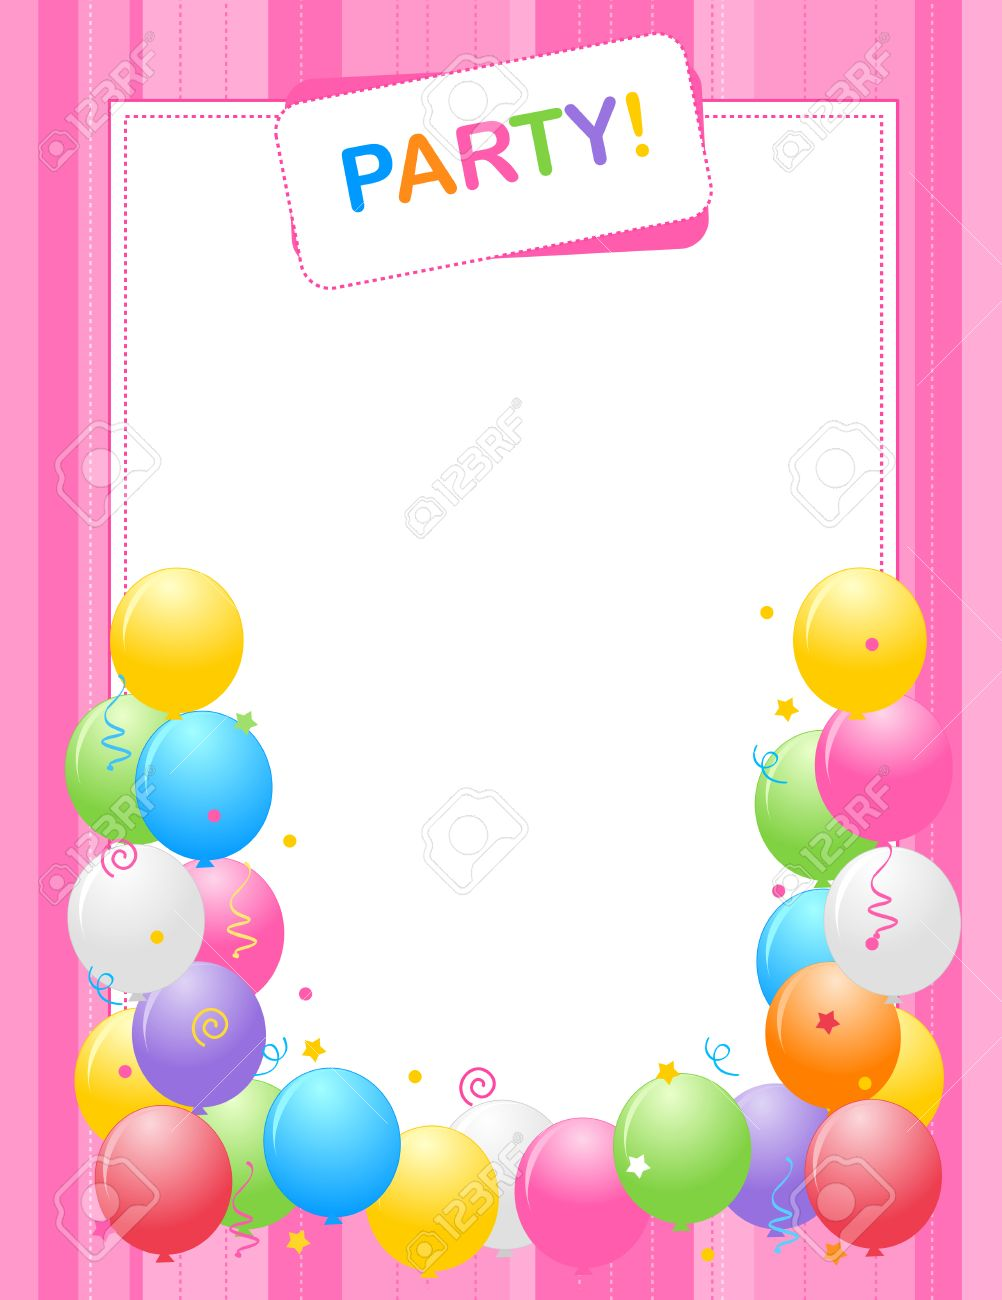 Doc Birthday Card Border 17 Best images about Border Designs – Birthday Invitation Border